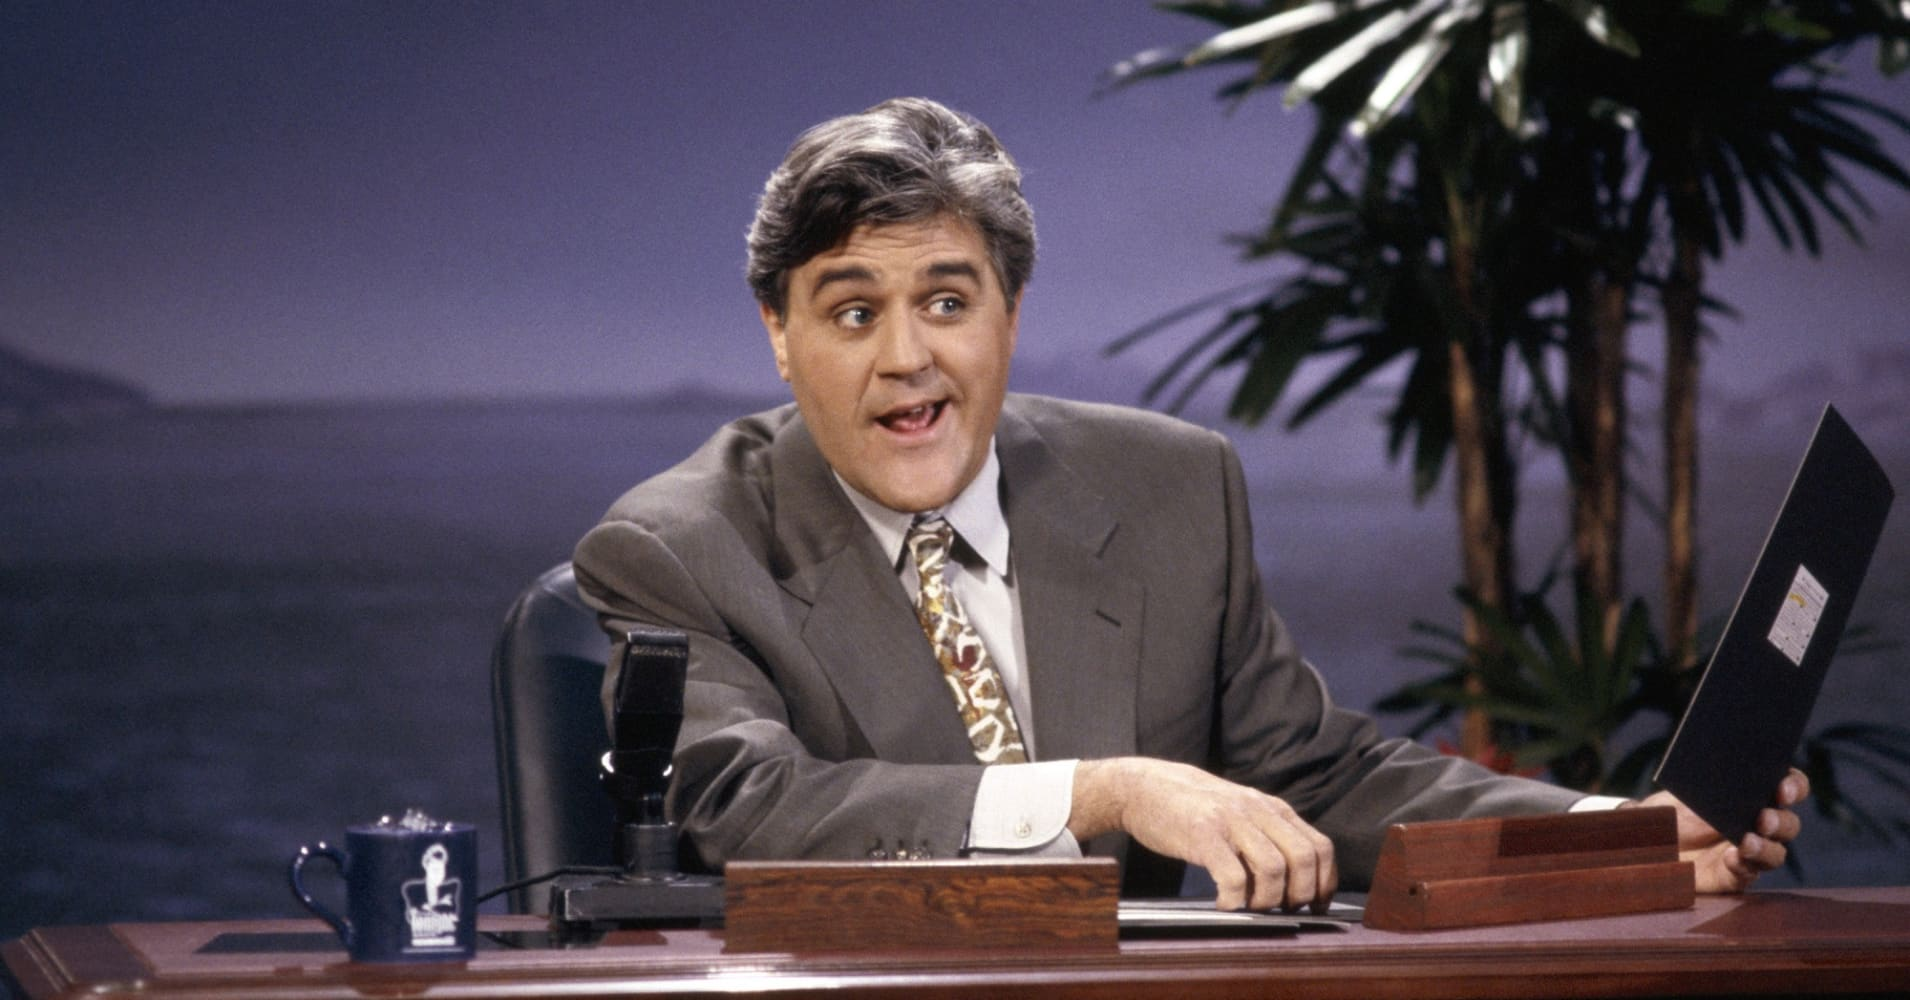 Why self-made millionaire Jay Leno still does 'about 210' live comedy shows a year